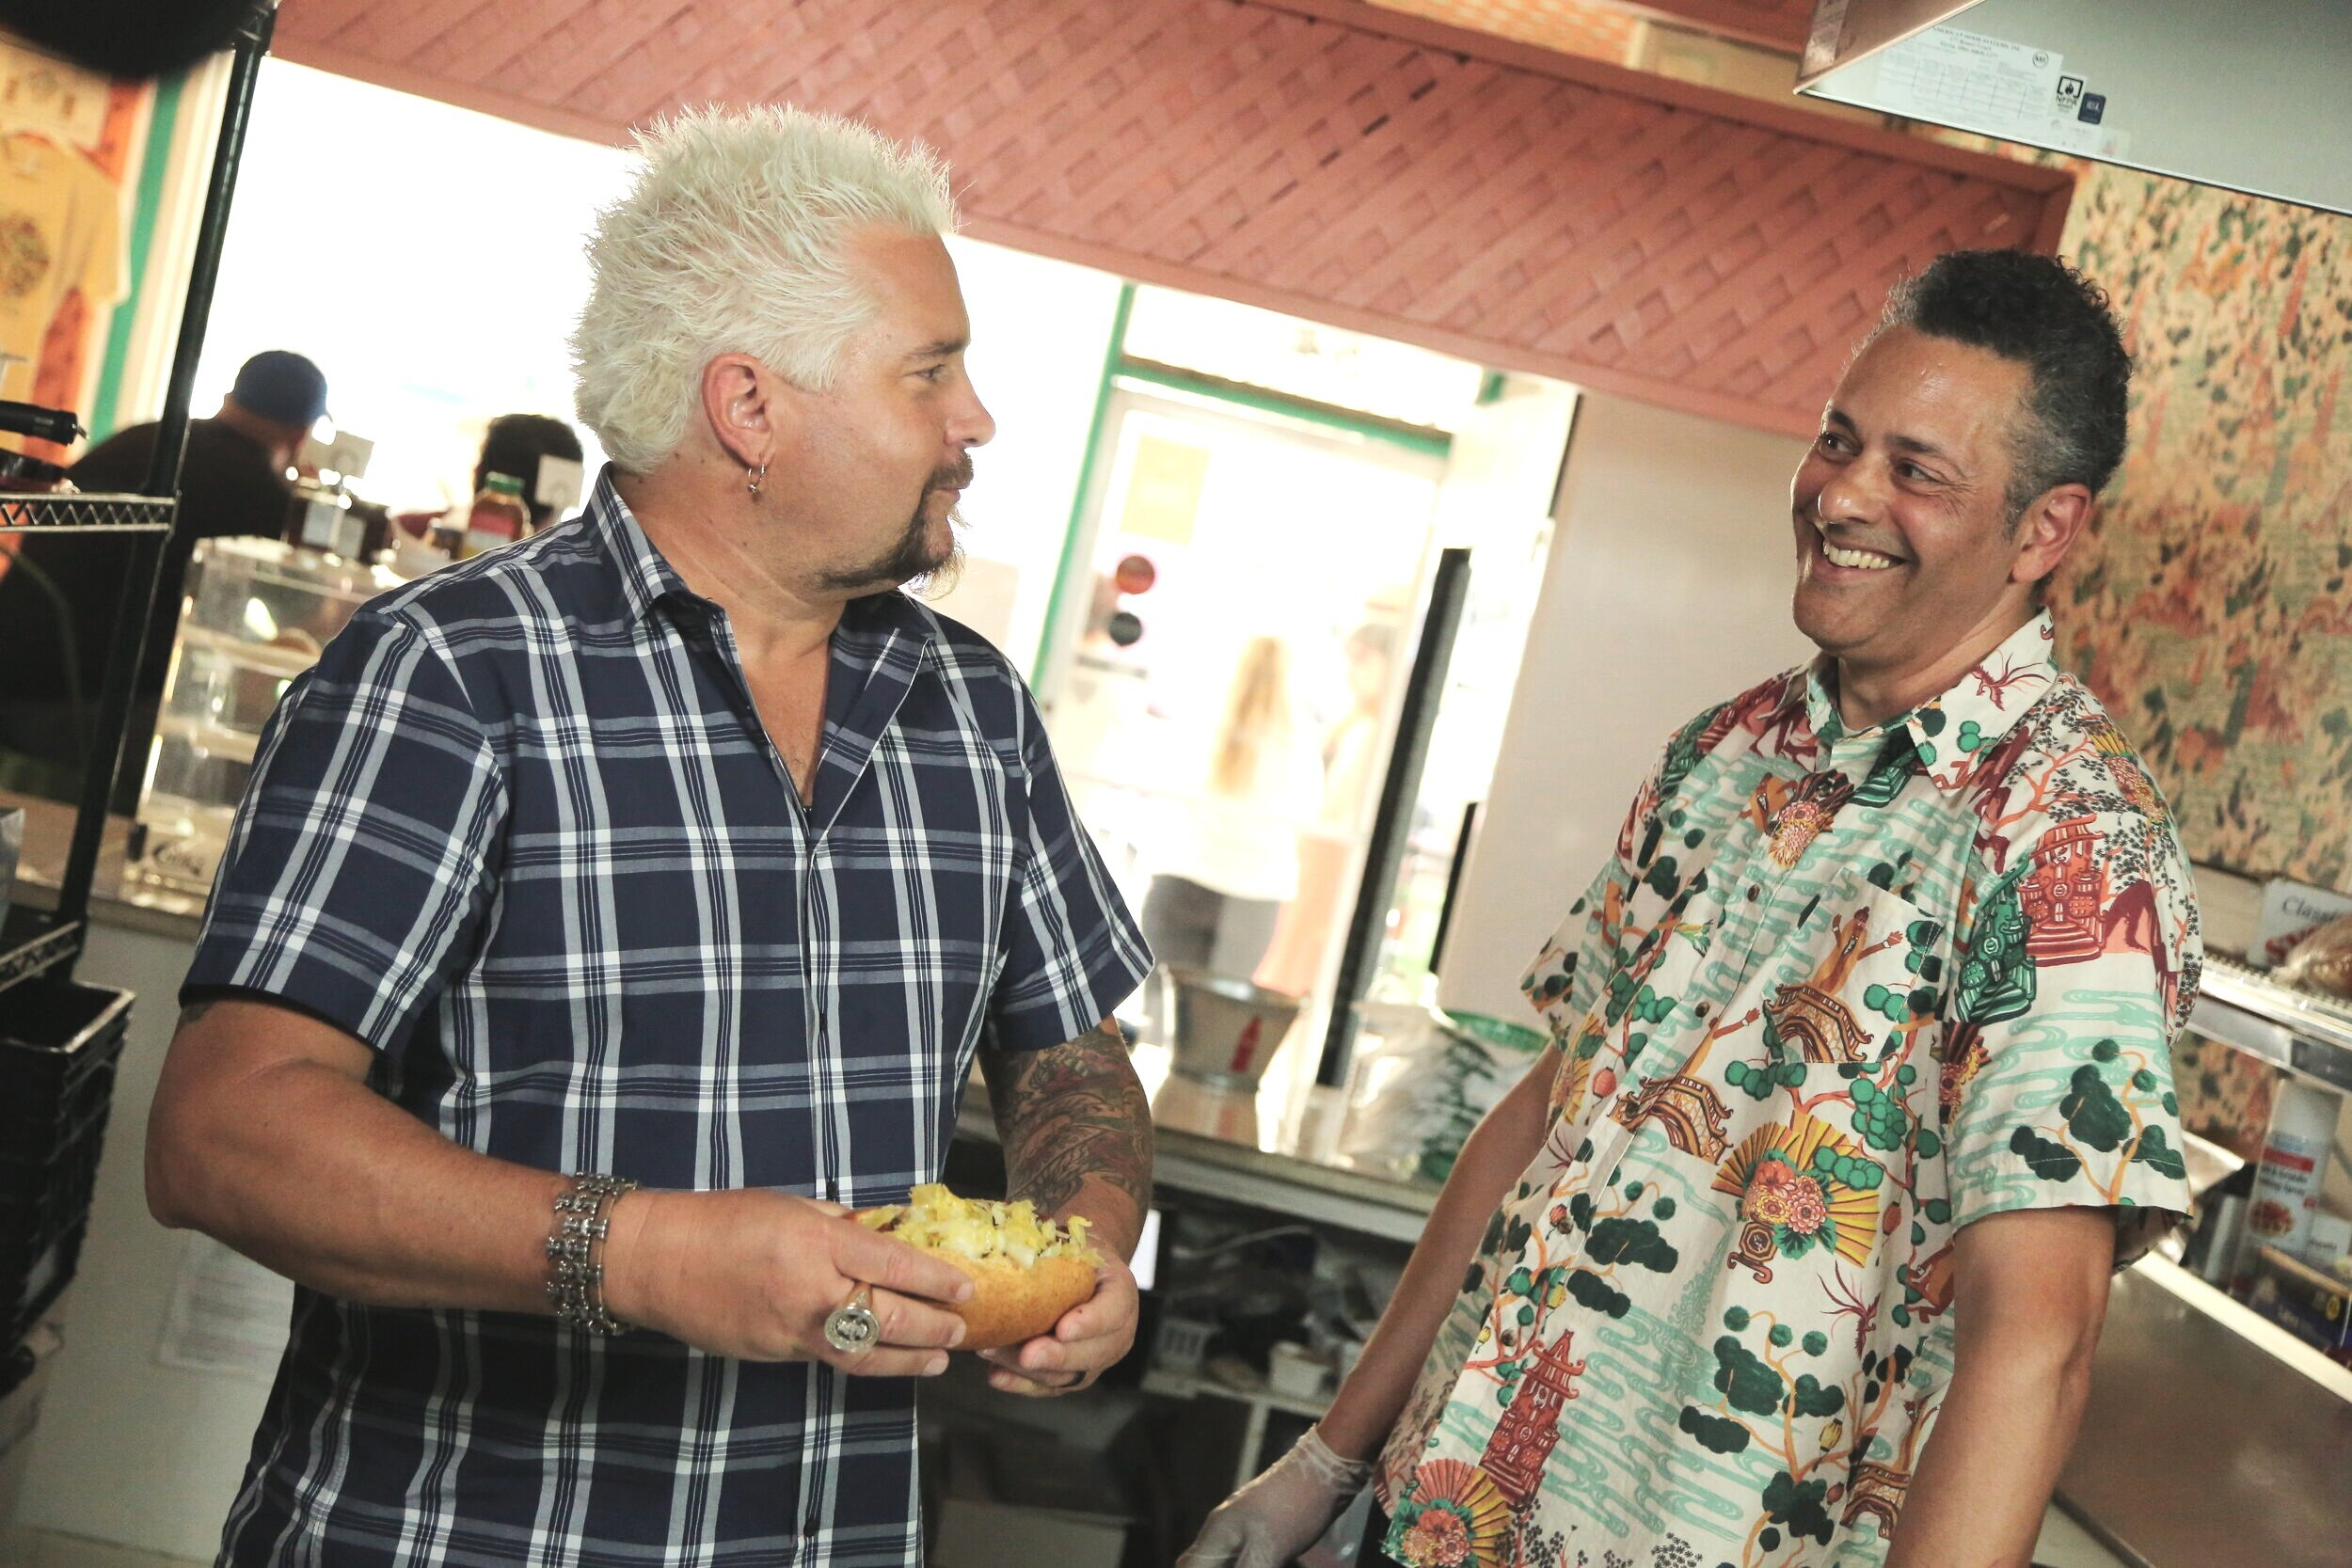 - Thanks to our loyal customers and yummy food, Frankinbun has become just a little famous :) Enjoy these fun appearances on Diners, Drive-ins, and Dives along with others!